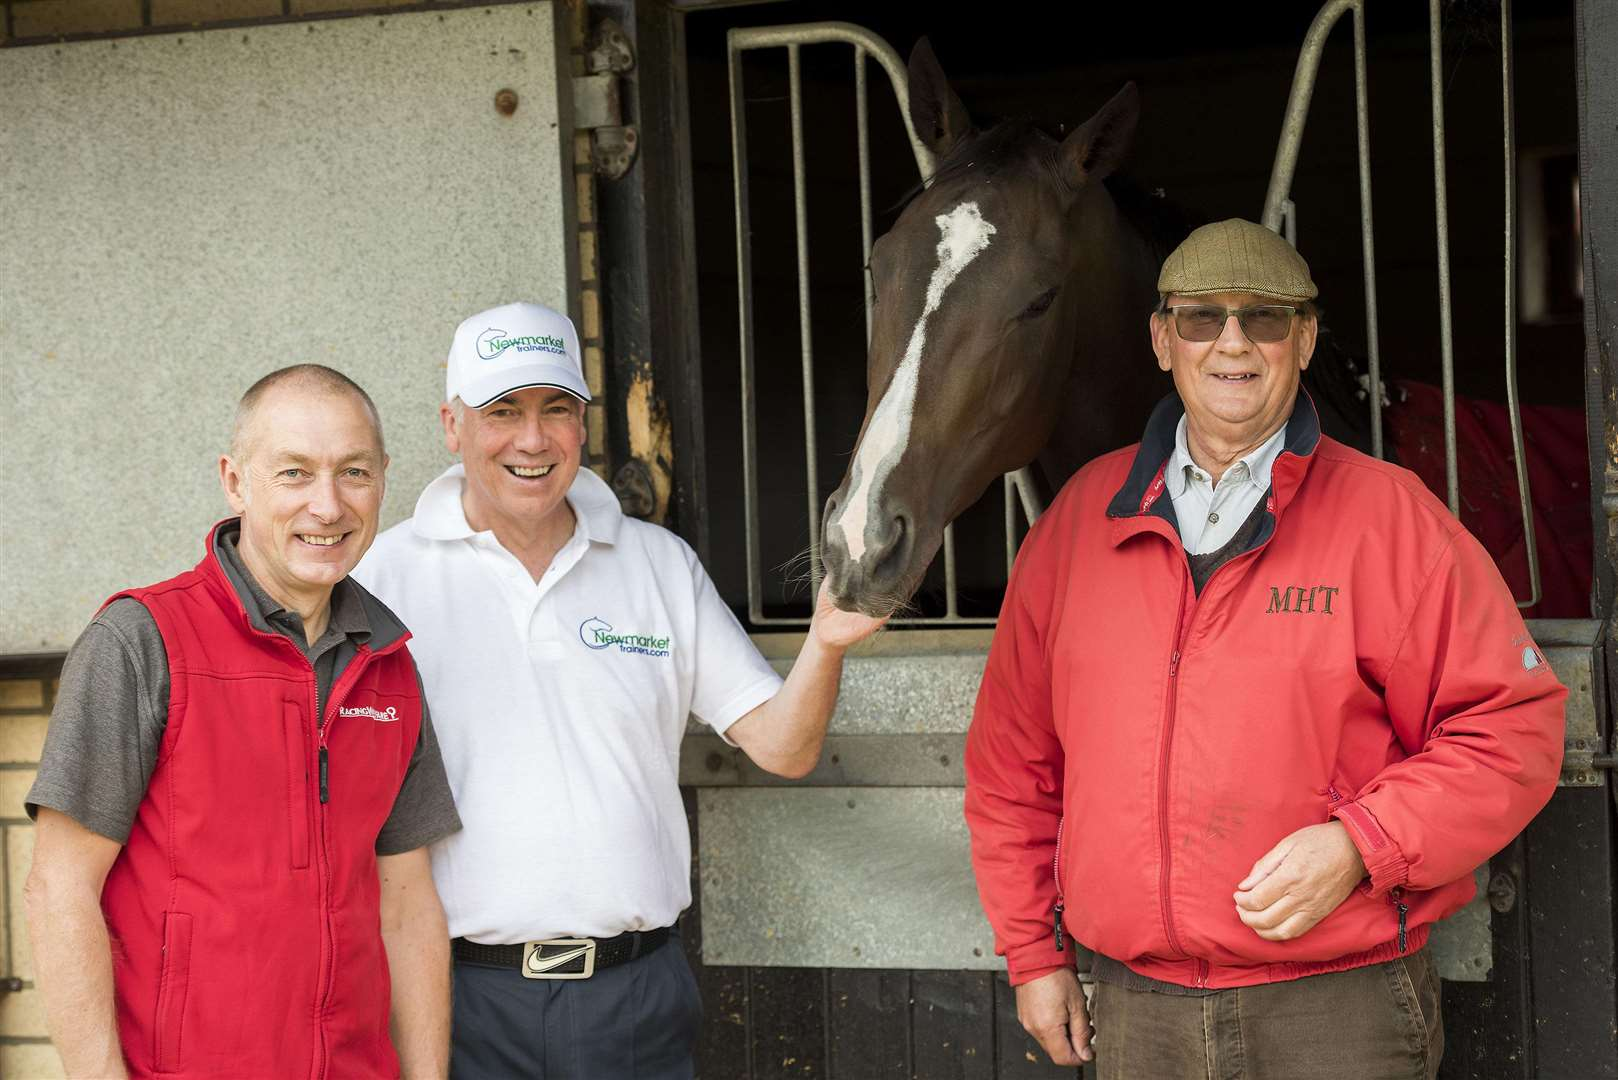 Newmarket trainer Mark Thompkins, Cliff Woof, and Mark Loades